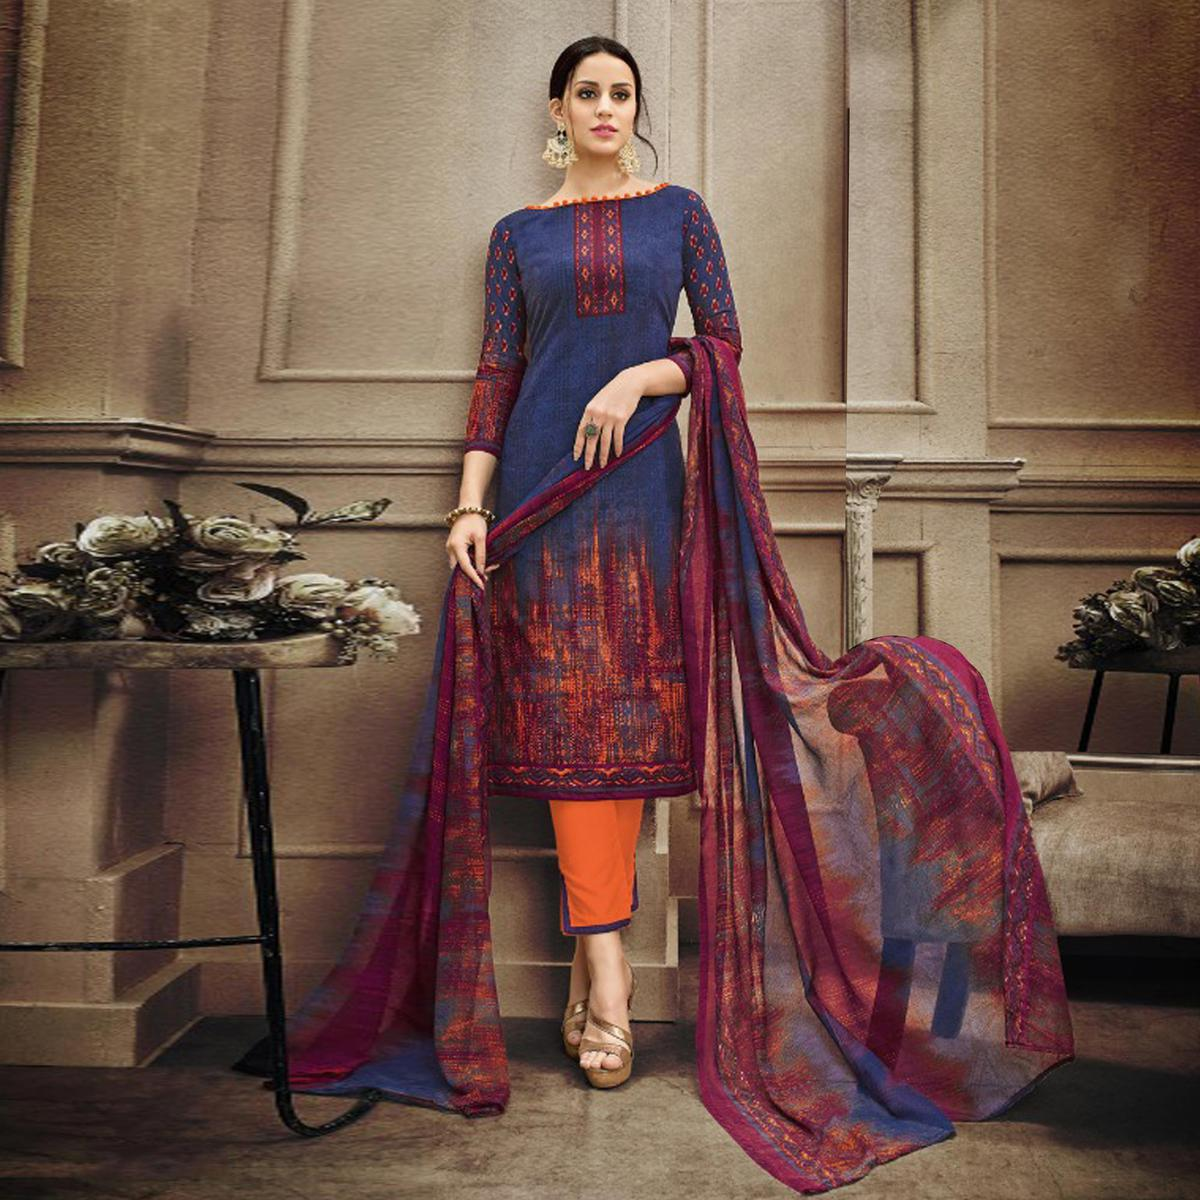 Dark Blue-Orange Colored Designer Pakistani Printed Pure Cambric Cotton Dress Material